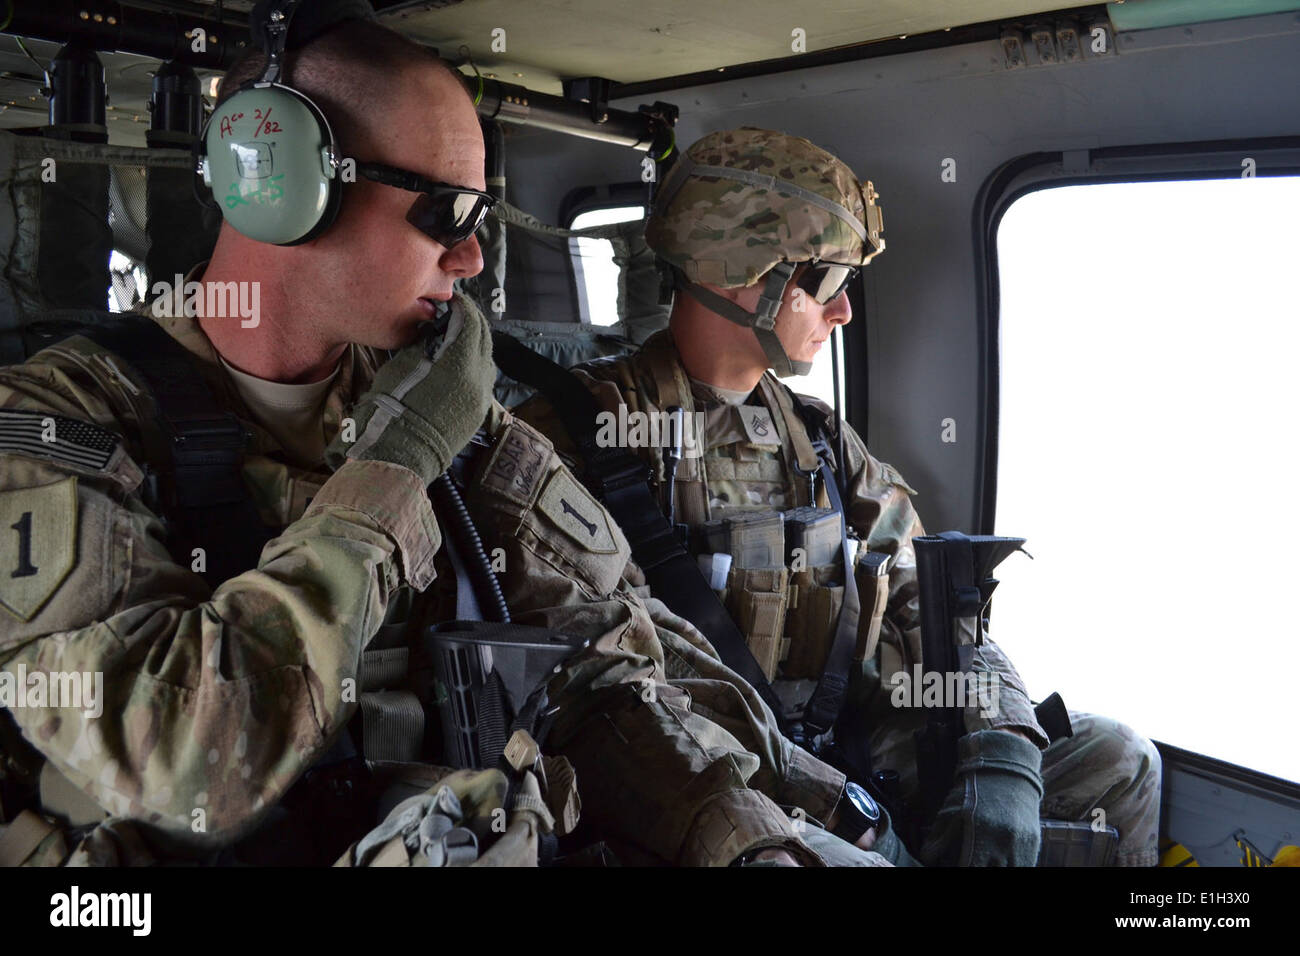 U.S. Arm Capt. Tim Black, an intelligence officer, and Staff Sgt. Christopher Lenington, an infantryman, both of Headquarters a - Stock Image